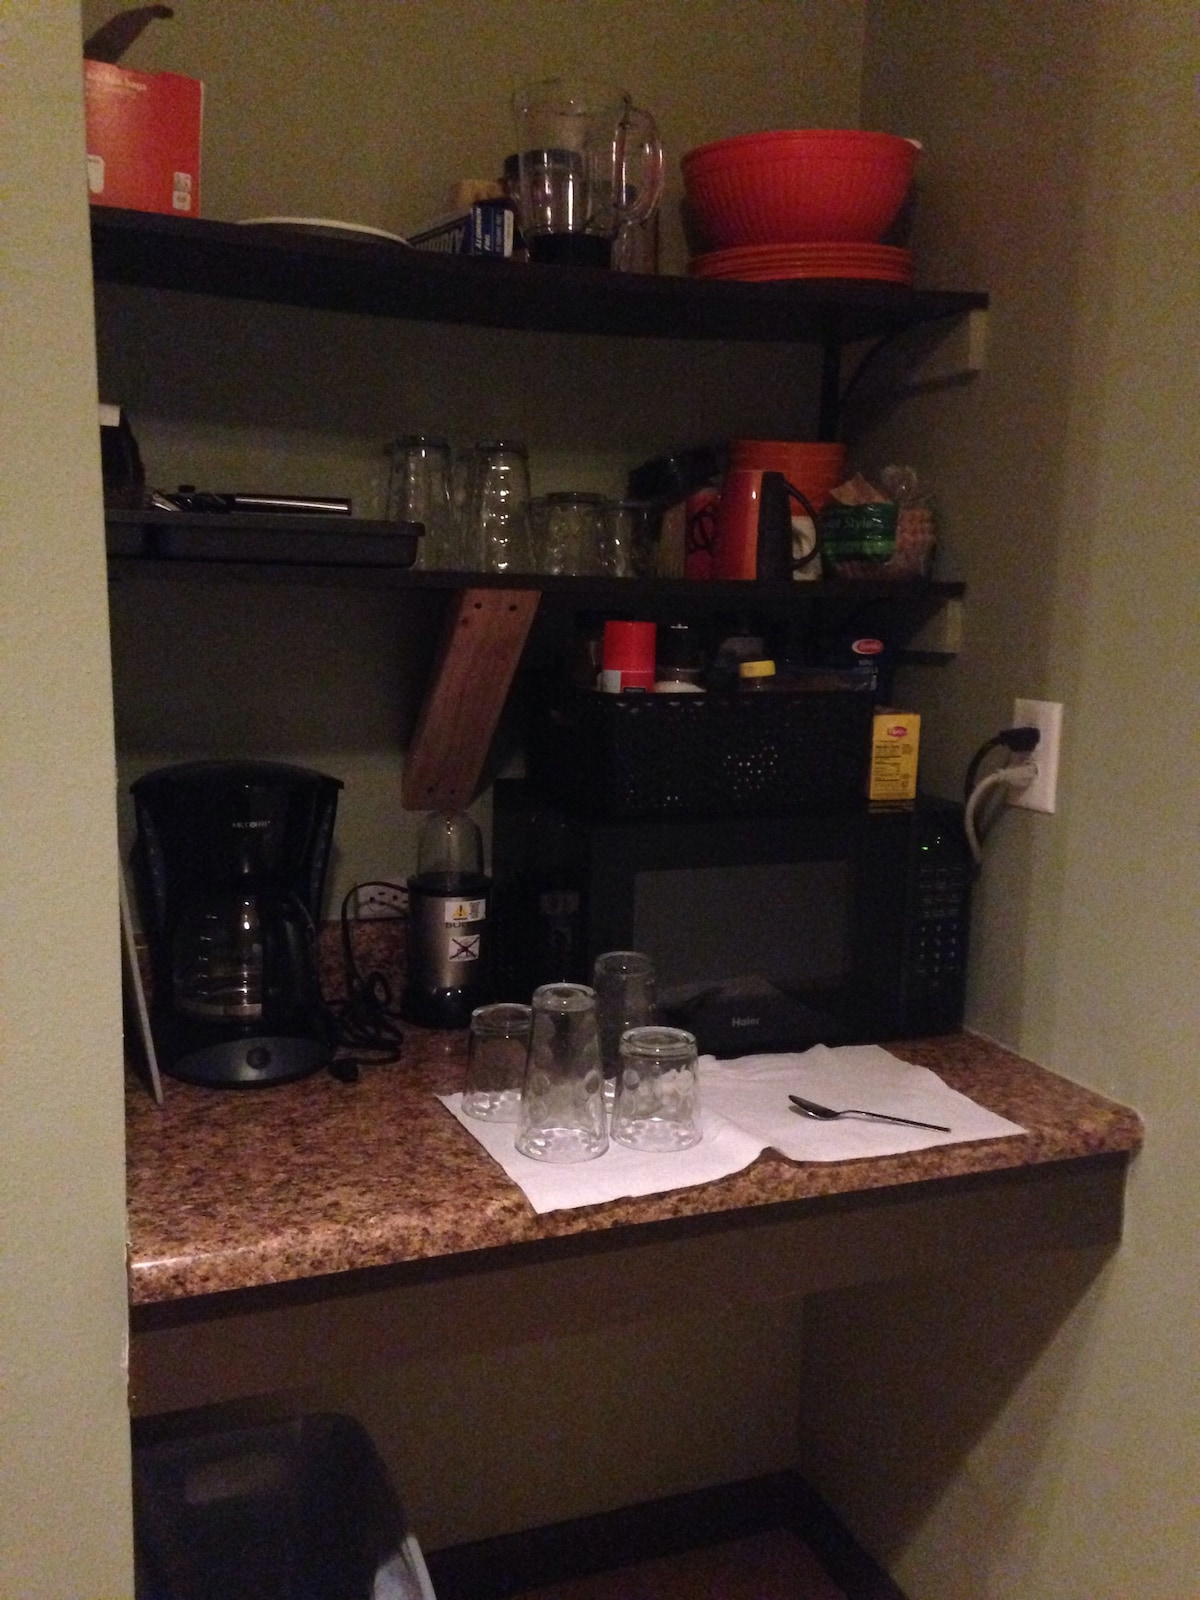 Nook in kitchenette. This is where the microwave, bowls, plates, cups, etc are located.